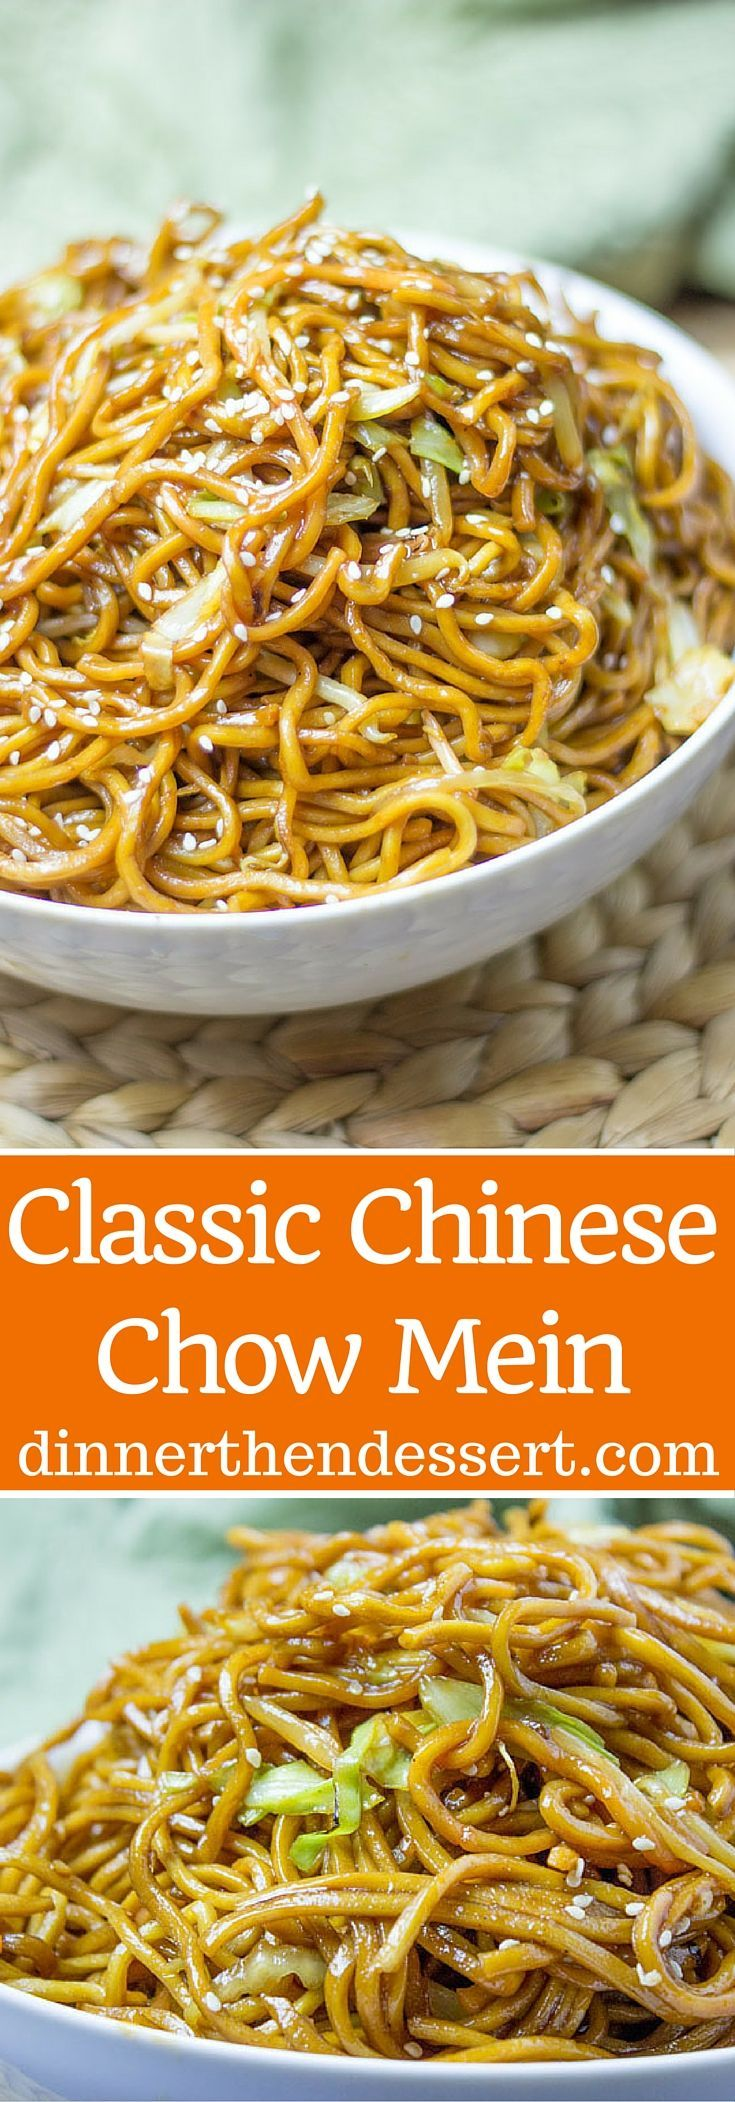 Classic Chinese Chow Mein With Authentic Ingredients And Easy Ingredient Swaps To Make This A Pantry Food Recipes